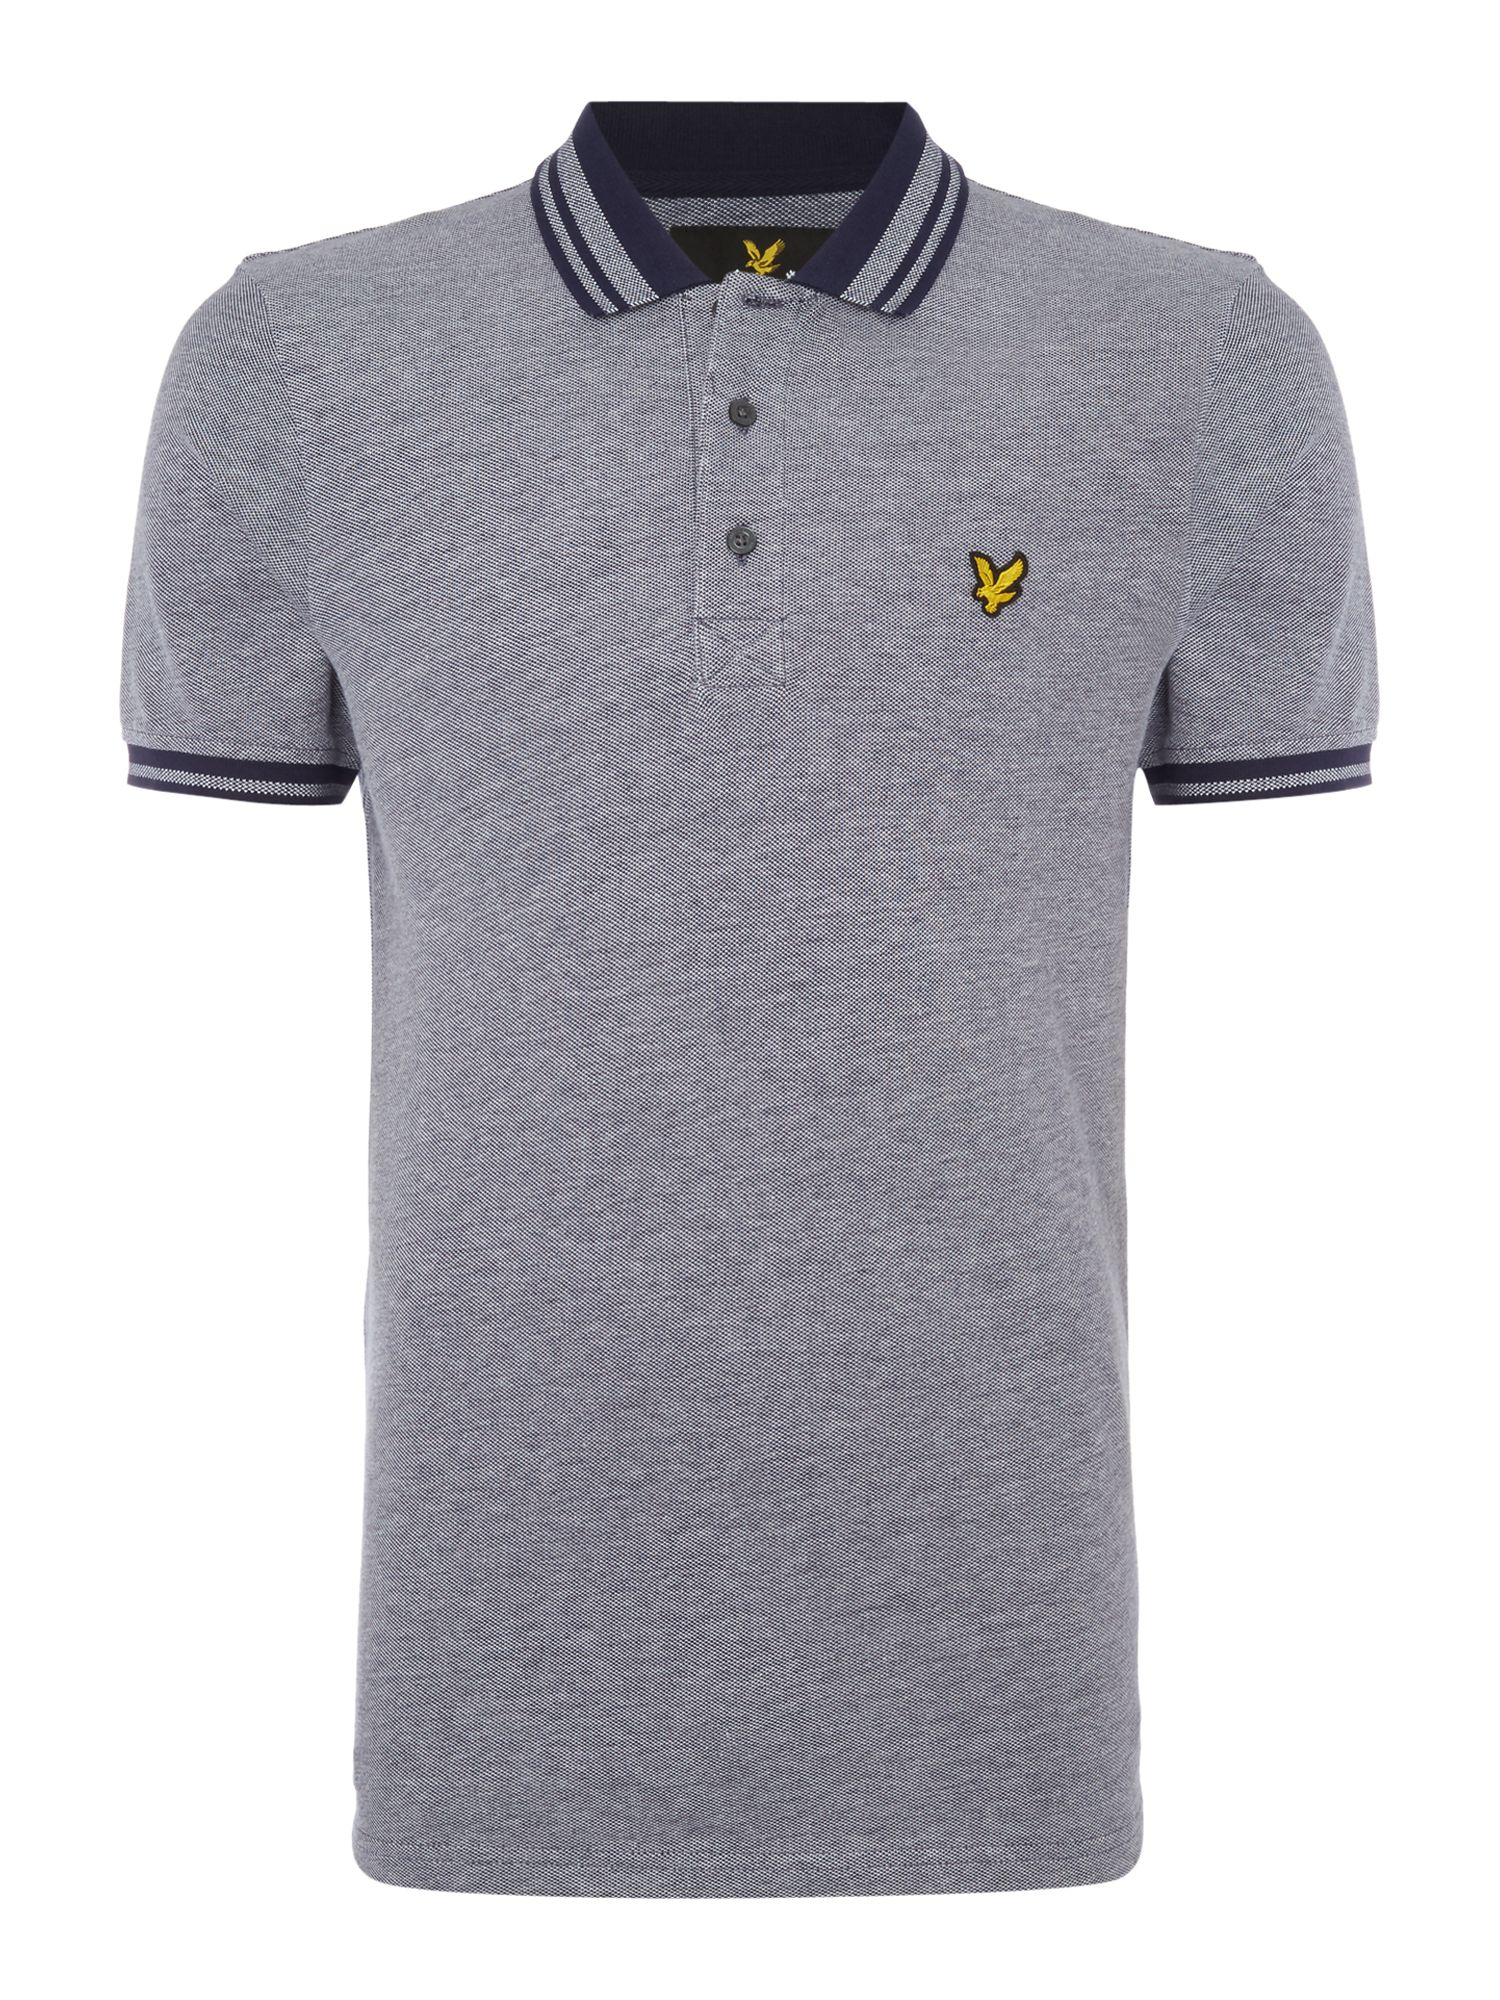 Men's Lyle and Scott Short Sleeve Oxford Tipped Collar Polo Shirt, Blue